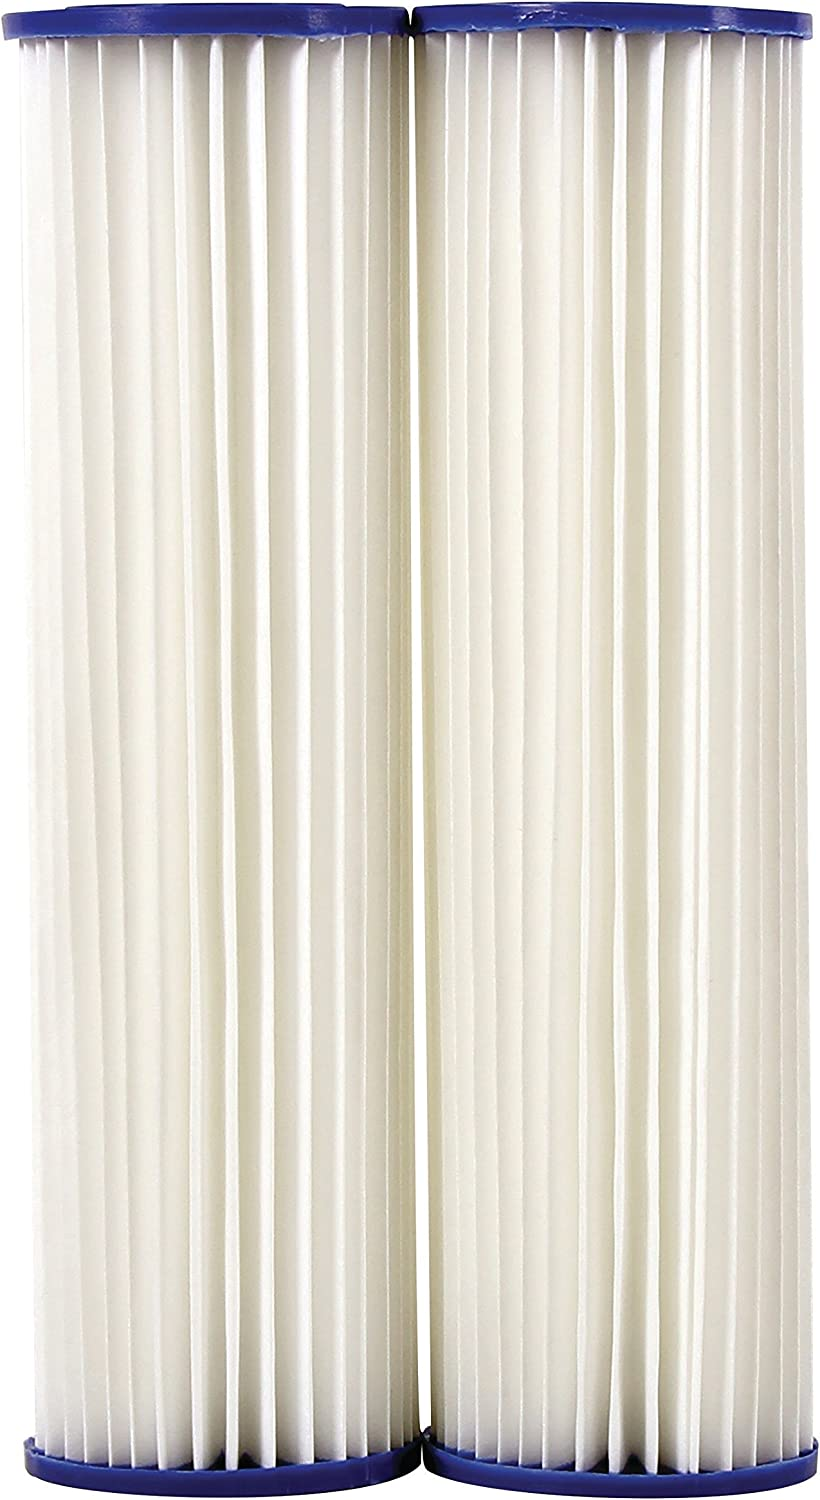 DuPont WFPFC3002 Universal Whole House Pleated Poly Cartridge